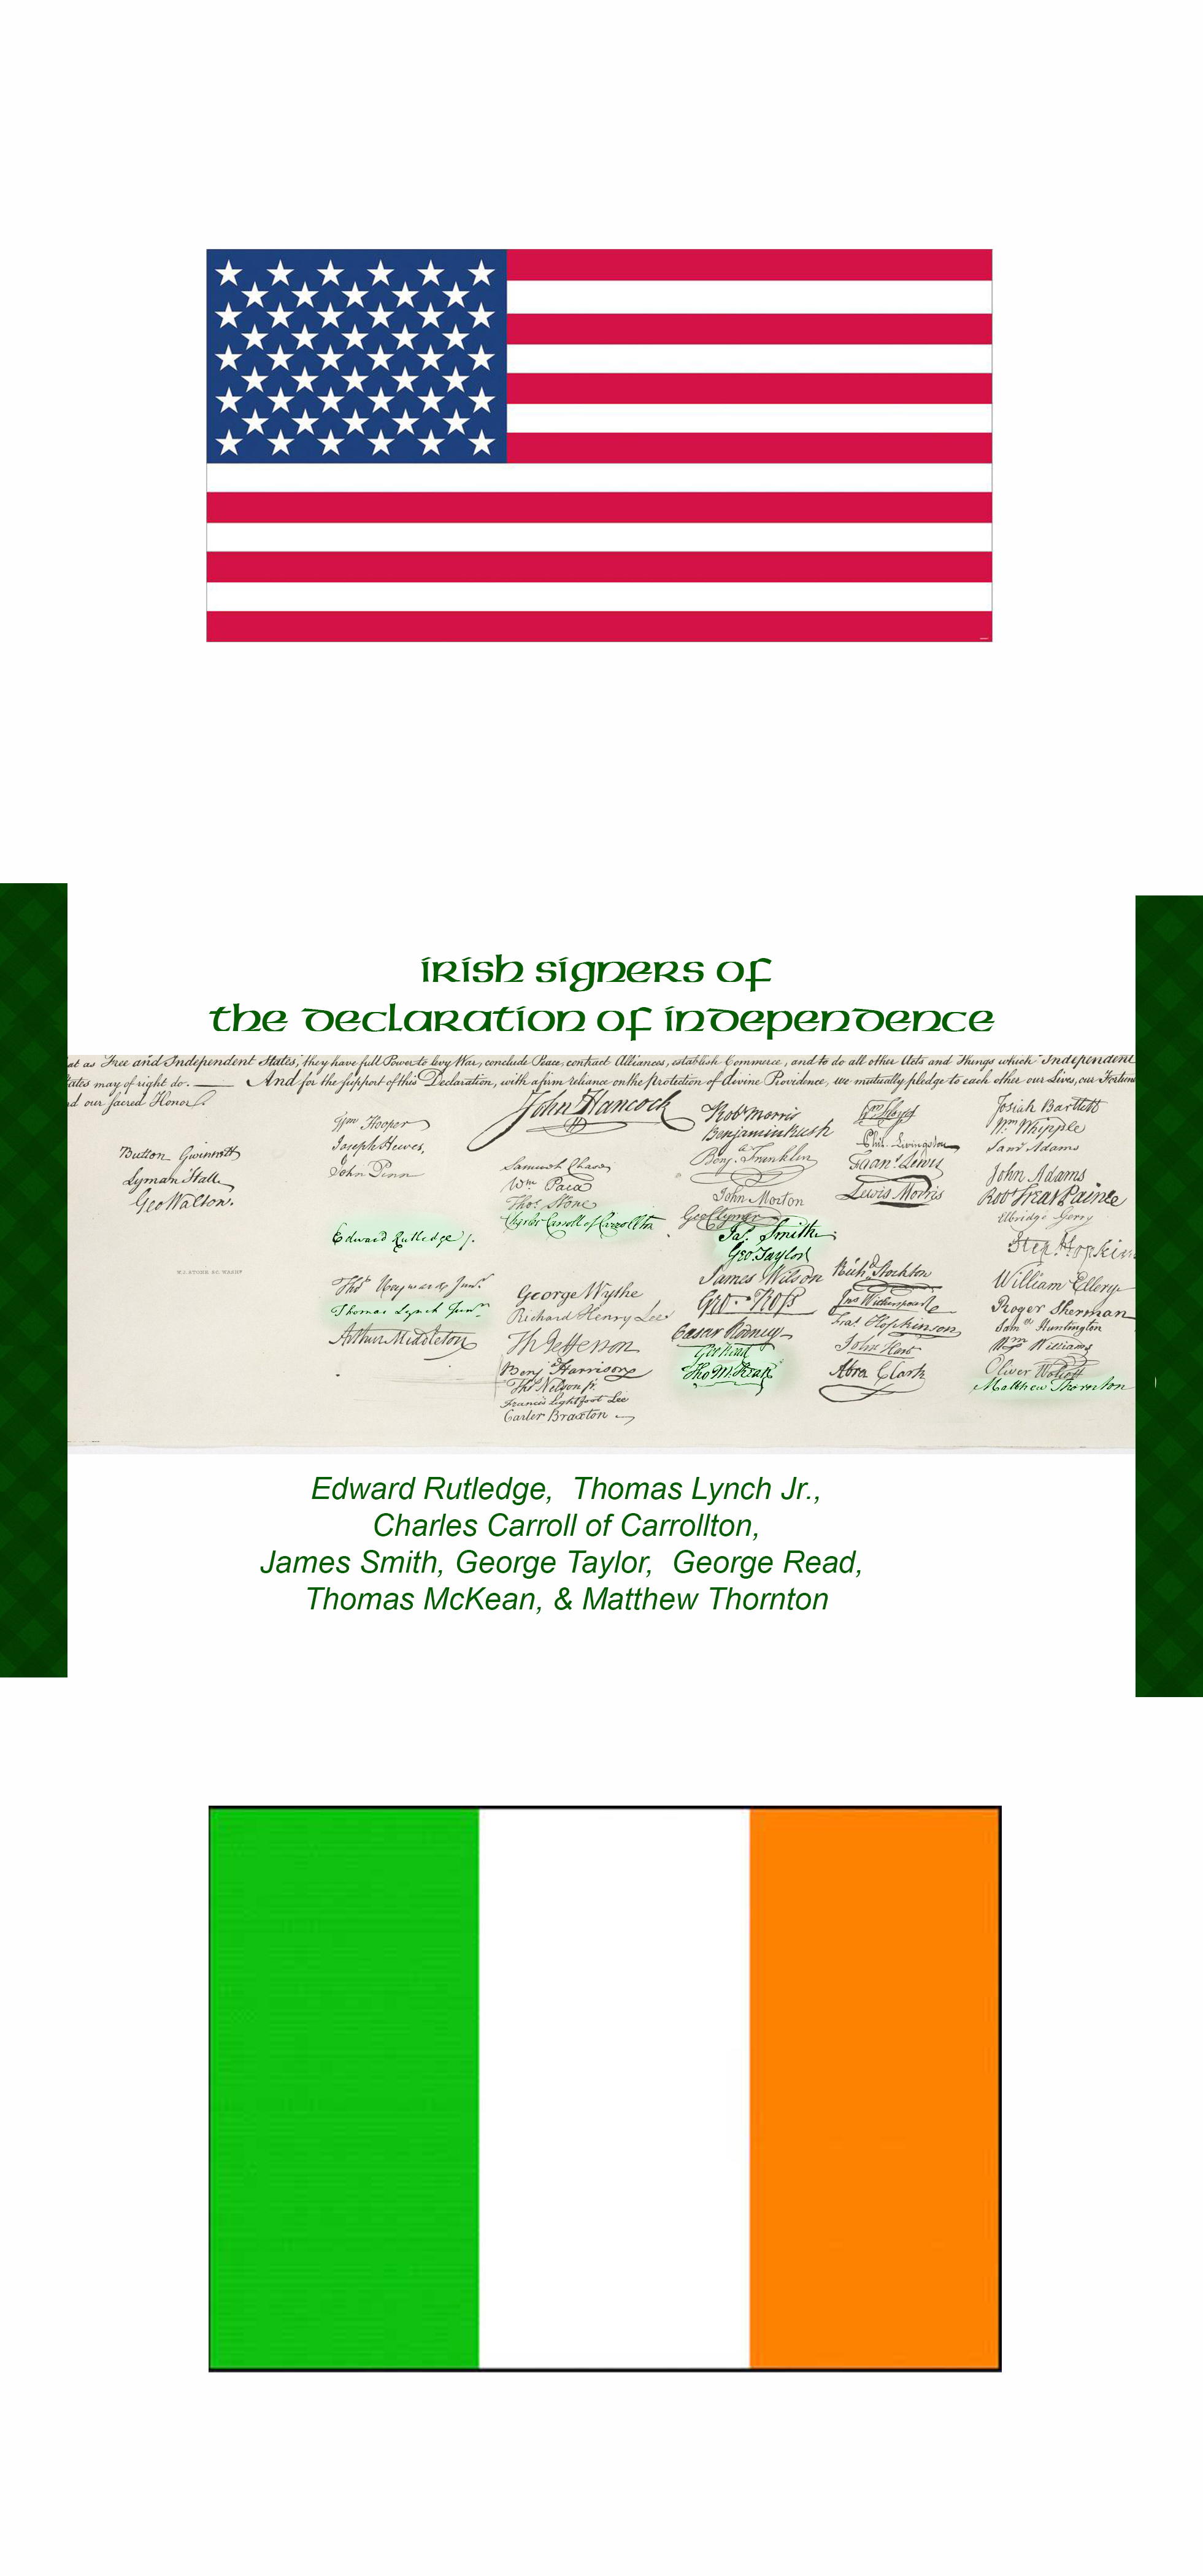 American Grown Irish Roots Highlighted Irish Signatures on the Declaration of Independence